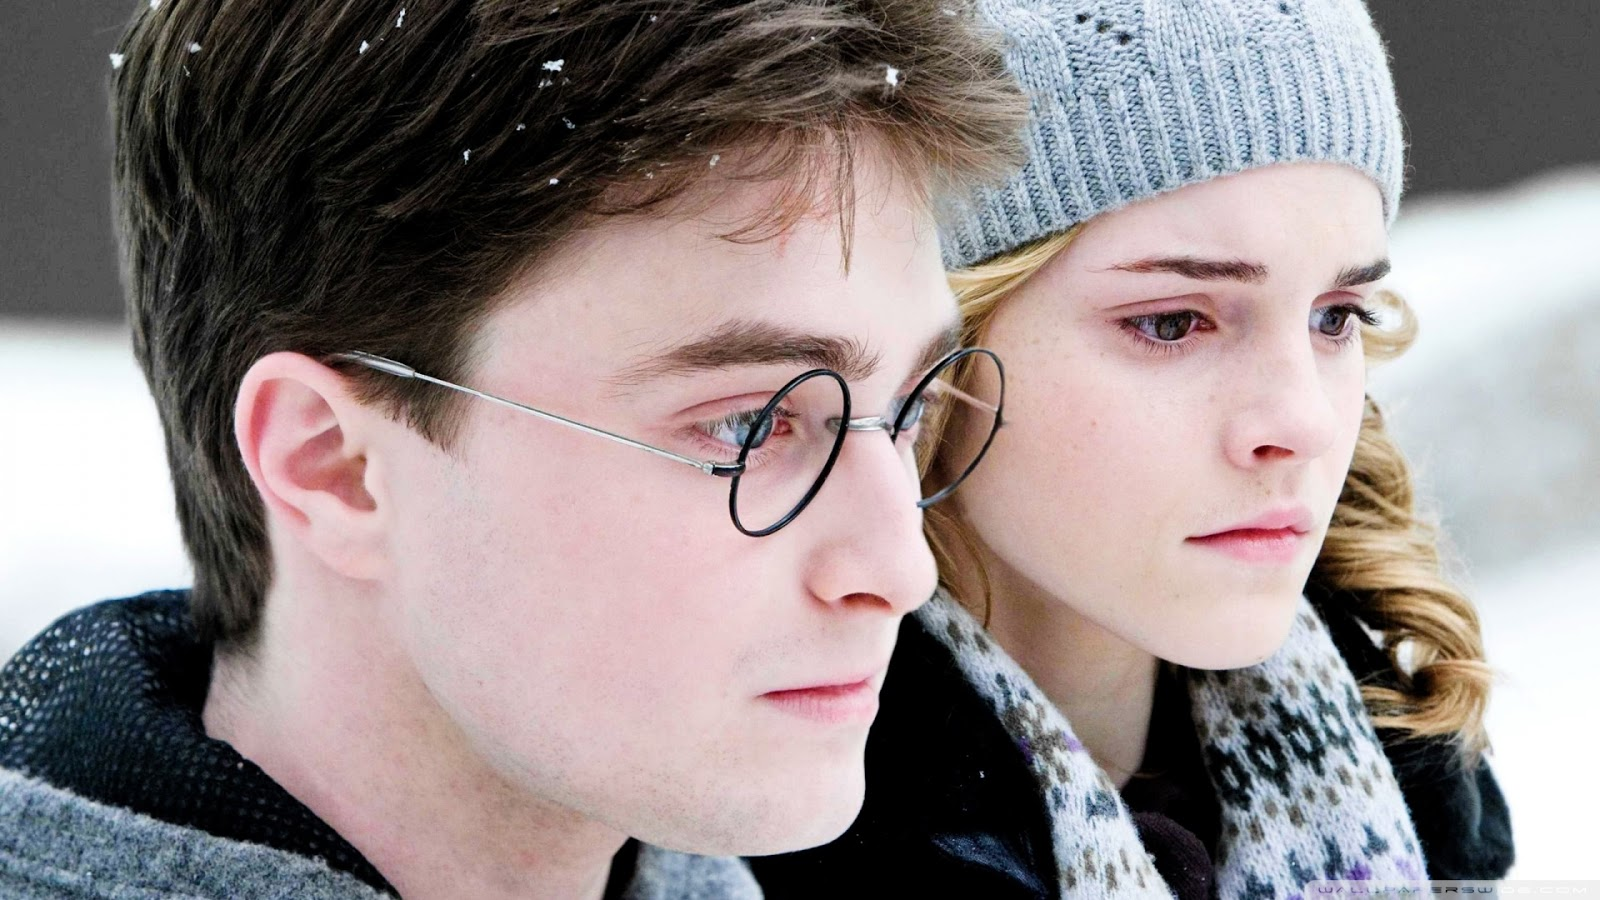 Harry Potter and Hermione Granger Wallpaper